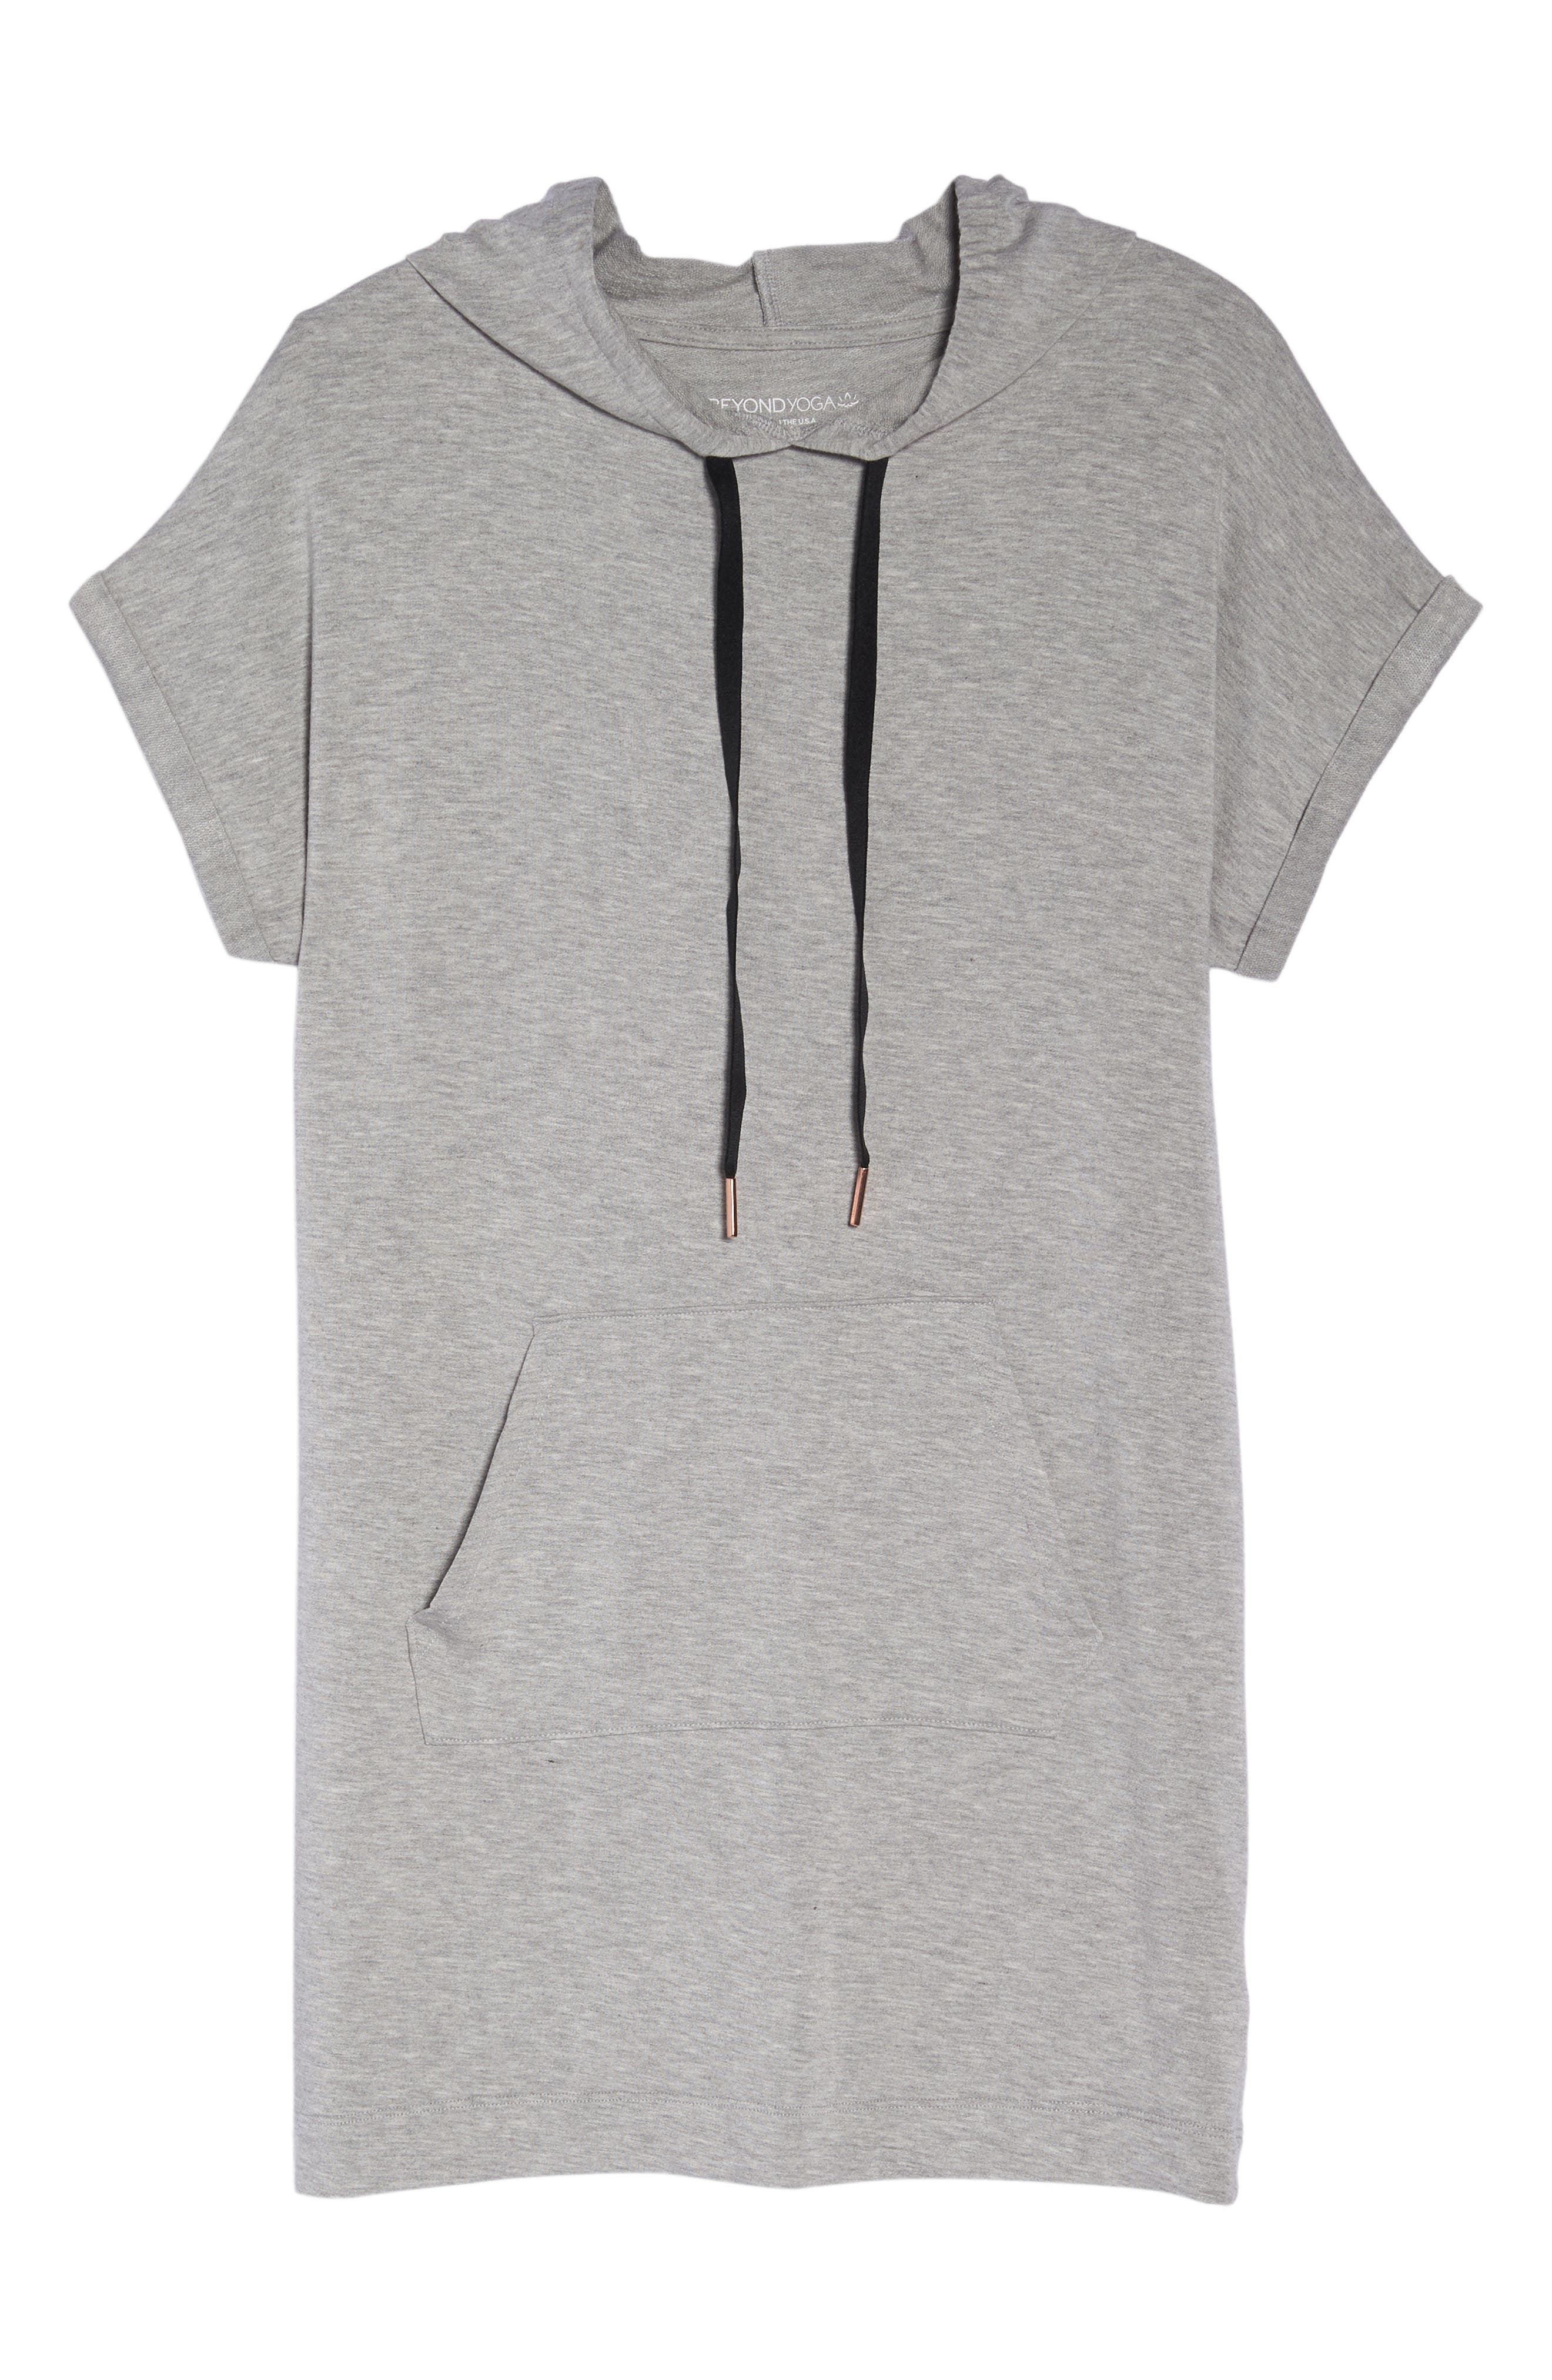 It's All Hoodie Hooded Sweatshirt Dress,                             Alternate thumbnail 7, color,                             Light Heather Gray